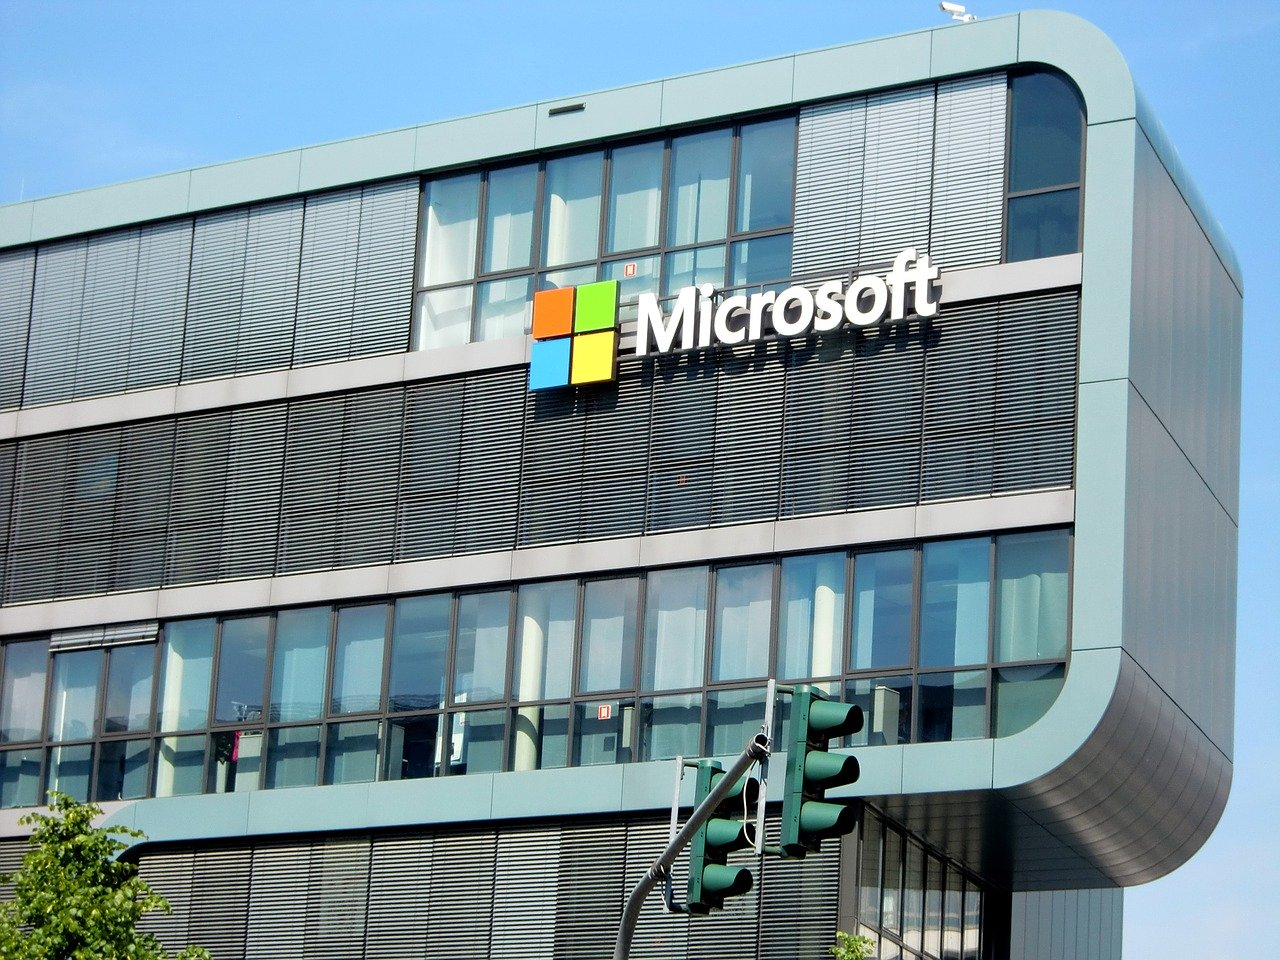 MICROSOFT 微软 stock news and analysis